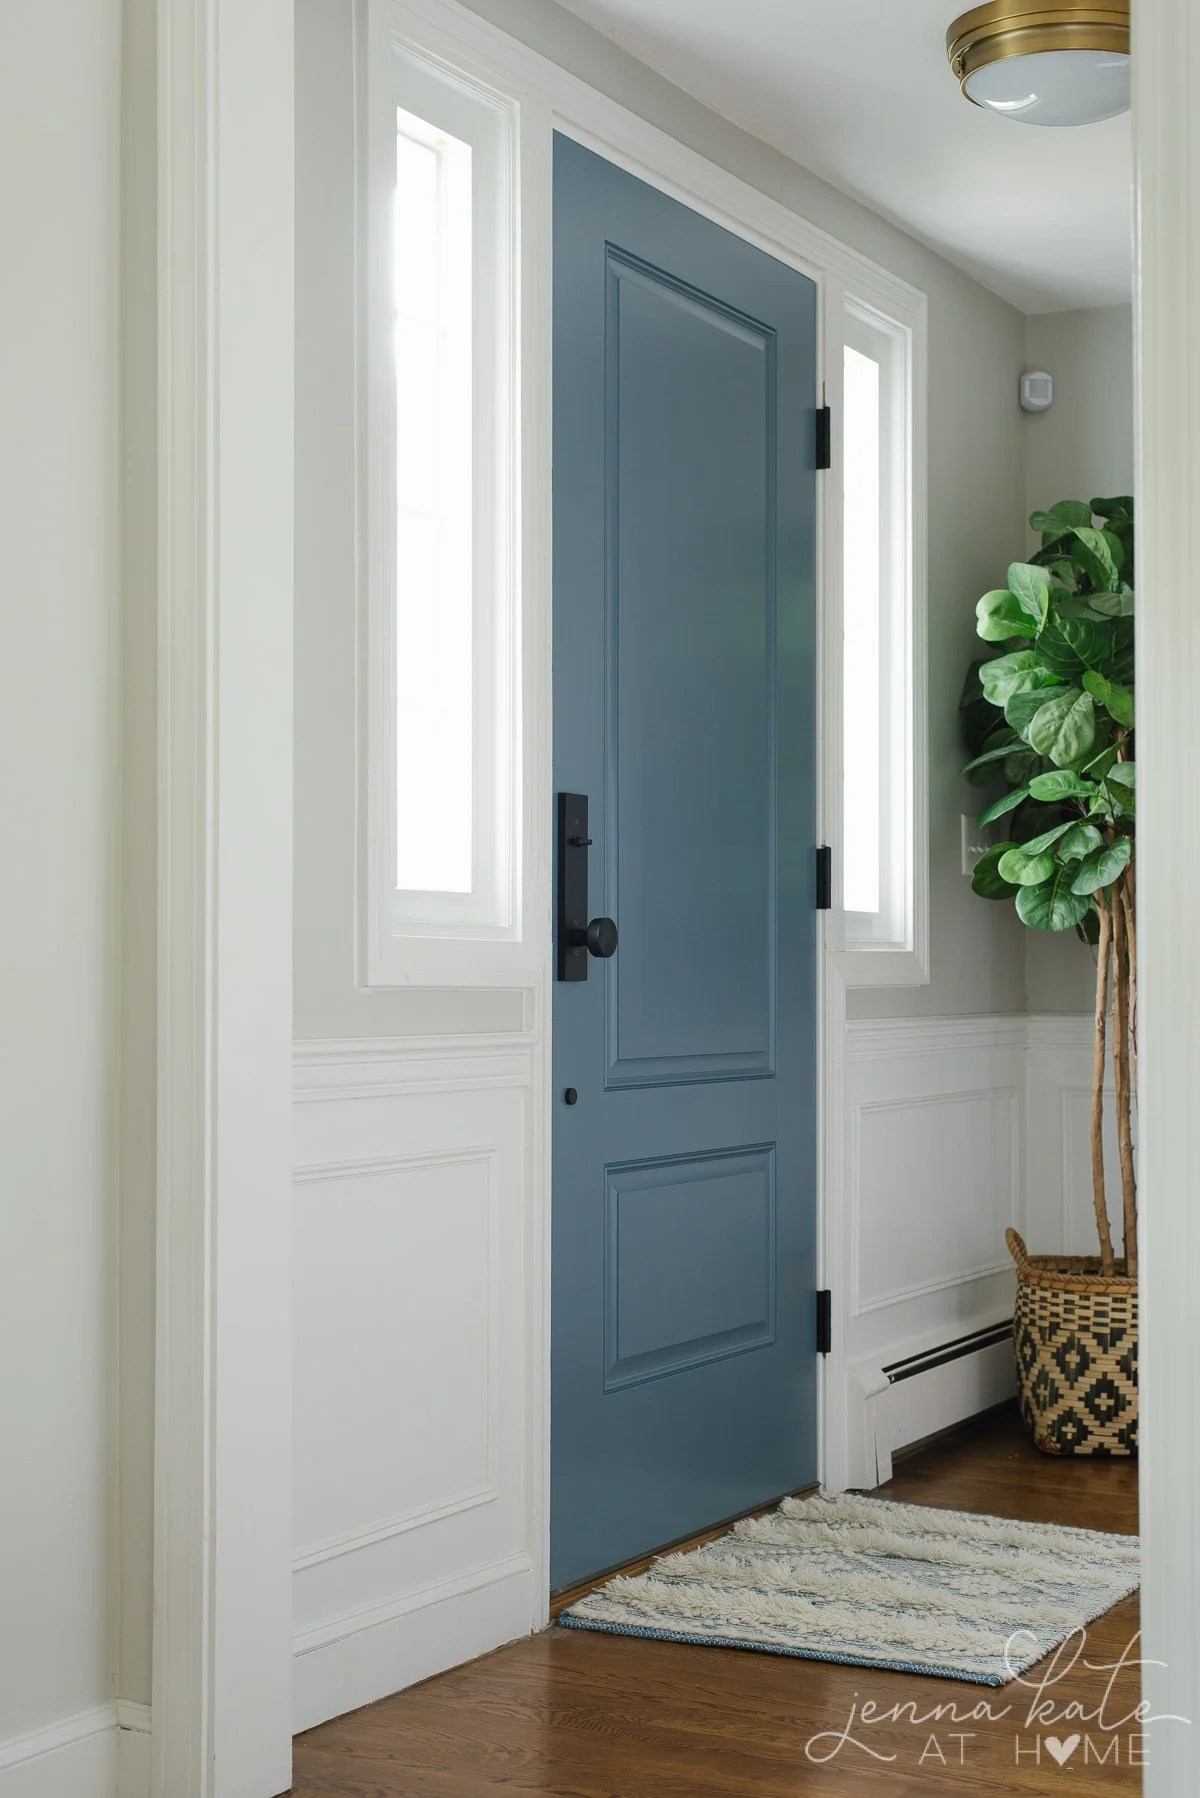 The Best White Paint Colors For Trim Jenna Kate At Home